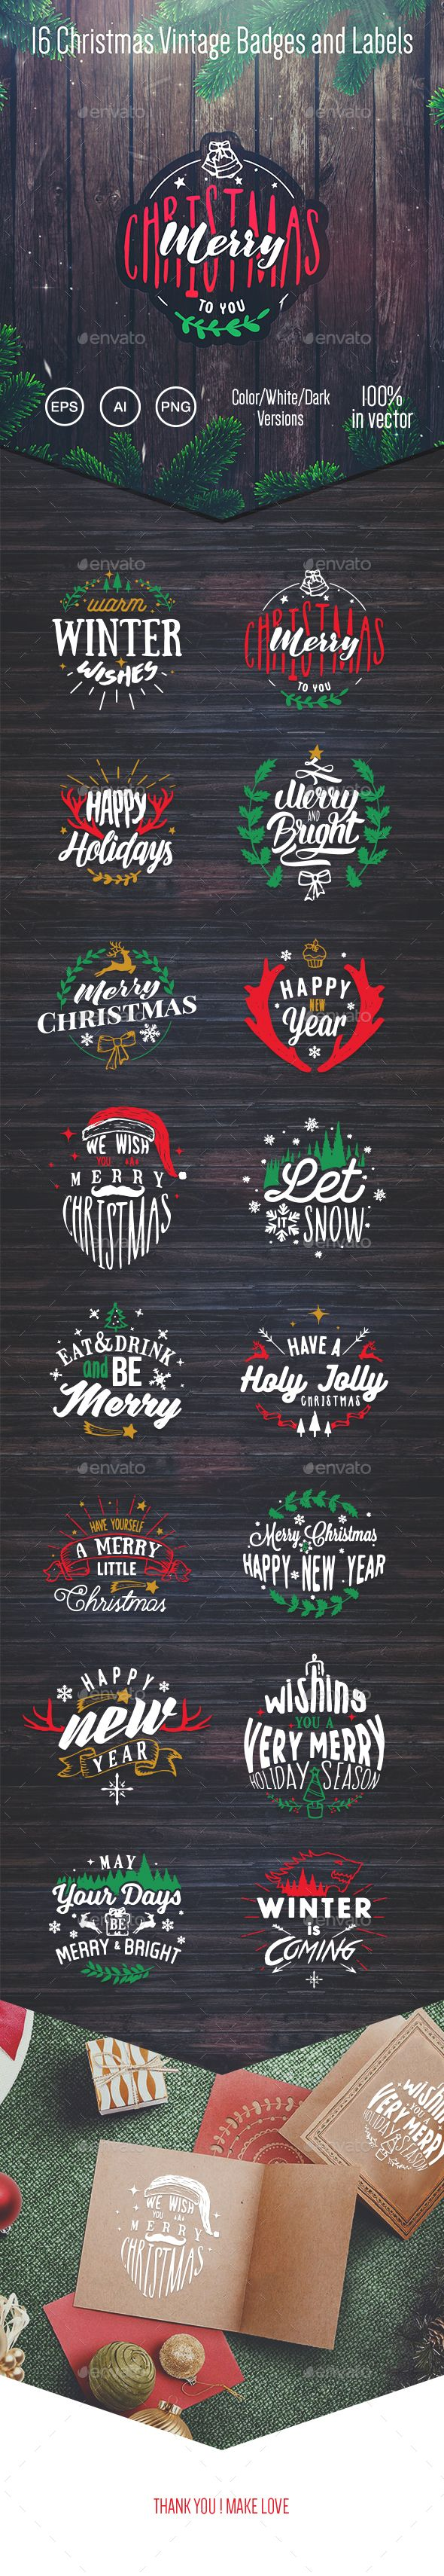 16 Christmas Vintage Badges and Labels Vector EPS, AI #design #xmas Download: http://graphicriver.net/item/16-christmas-vintage-badges-and-labels/14172393?ref=ksioks